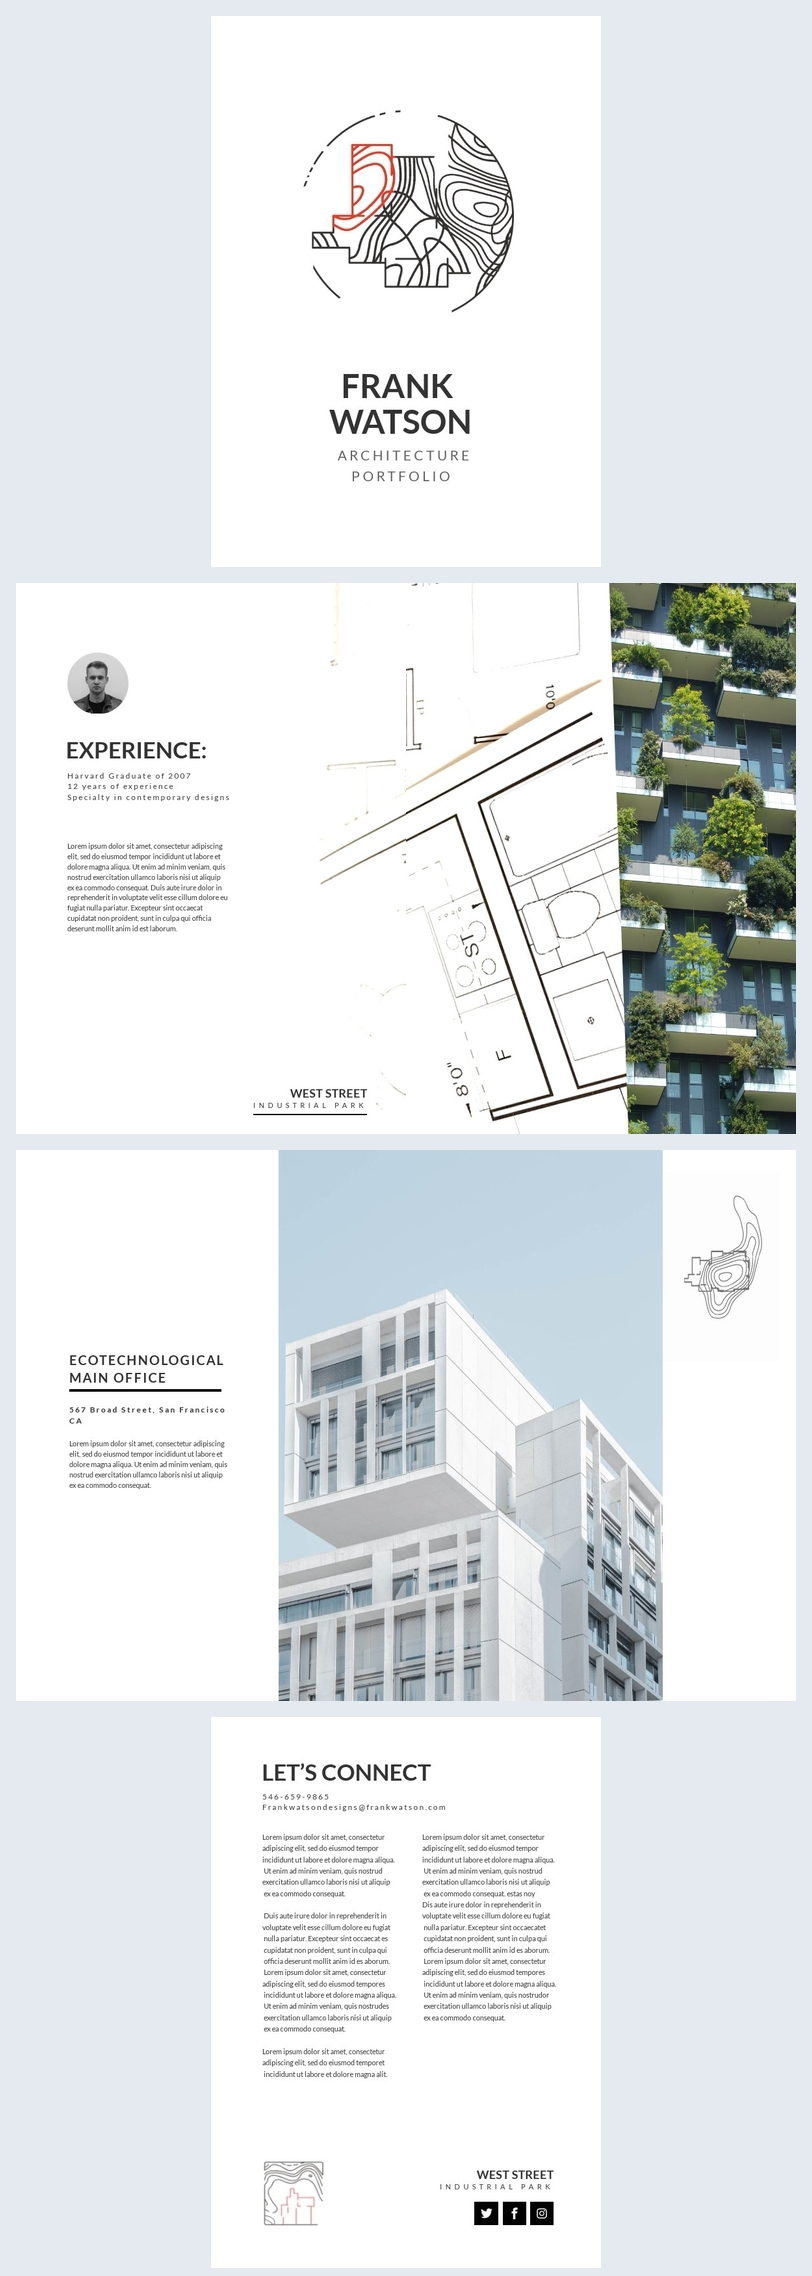 Architektur portfolio layout design